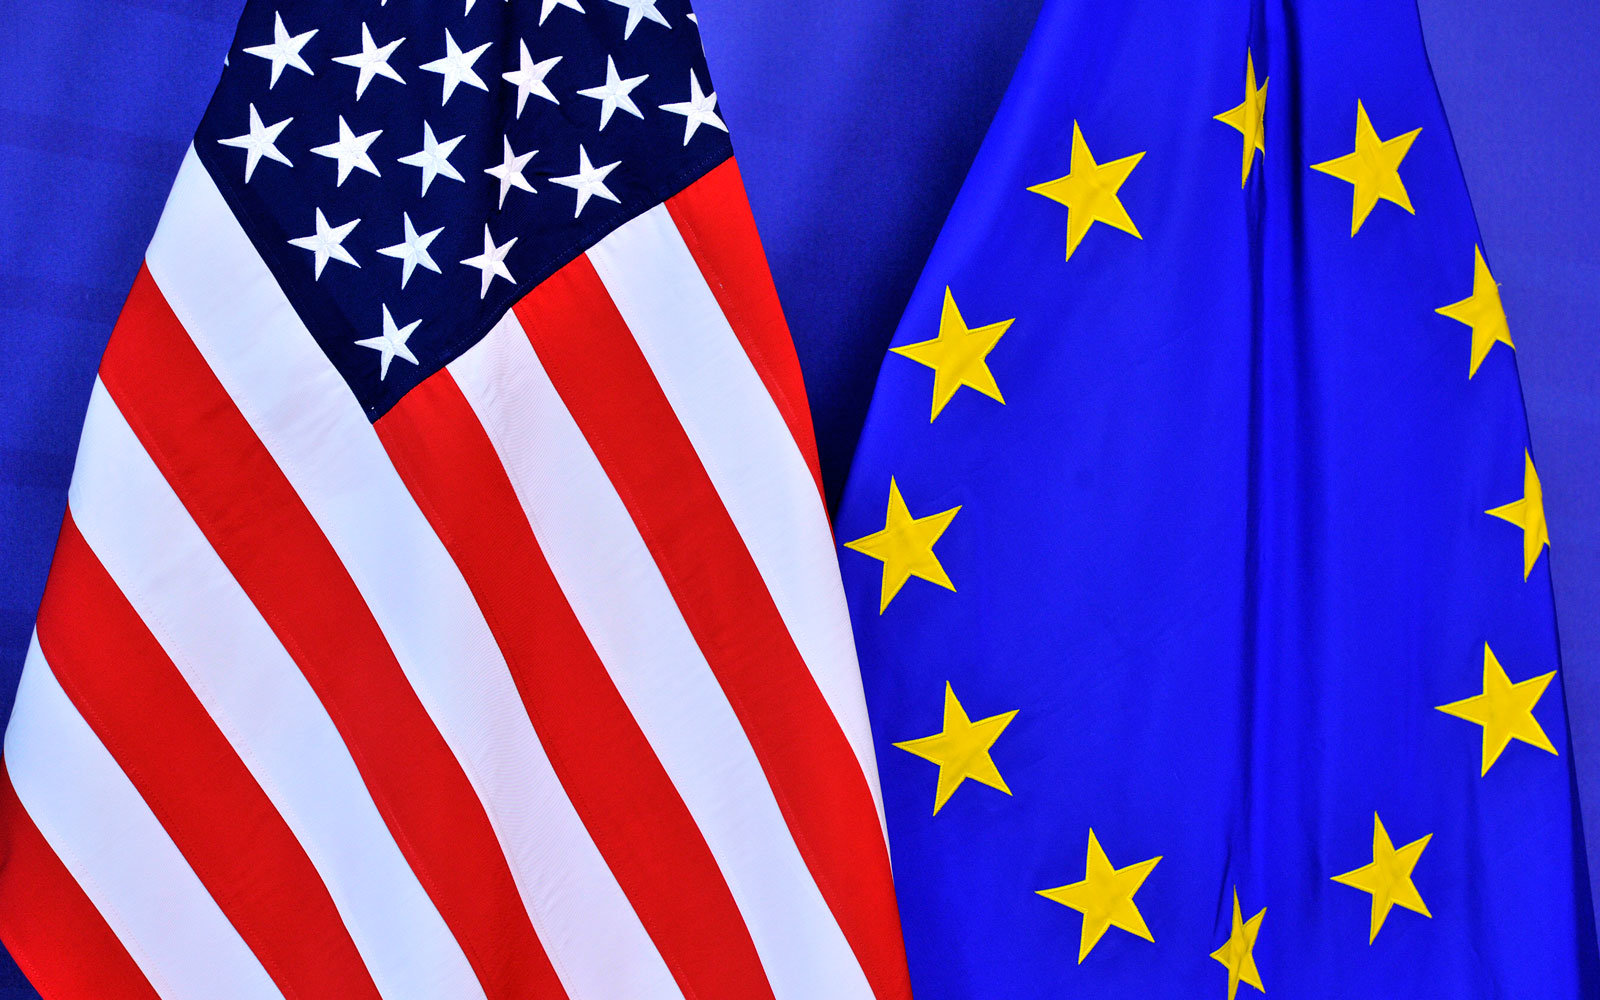 U S Tourists Could Soon Need Visas To Visit Europe